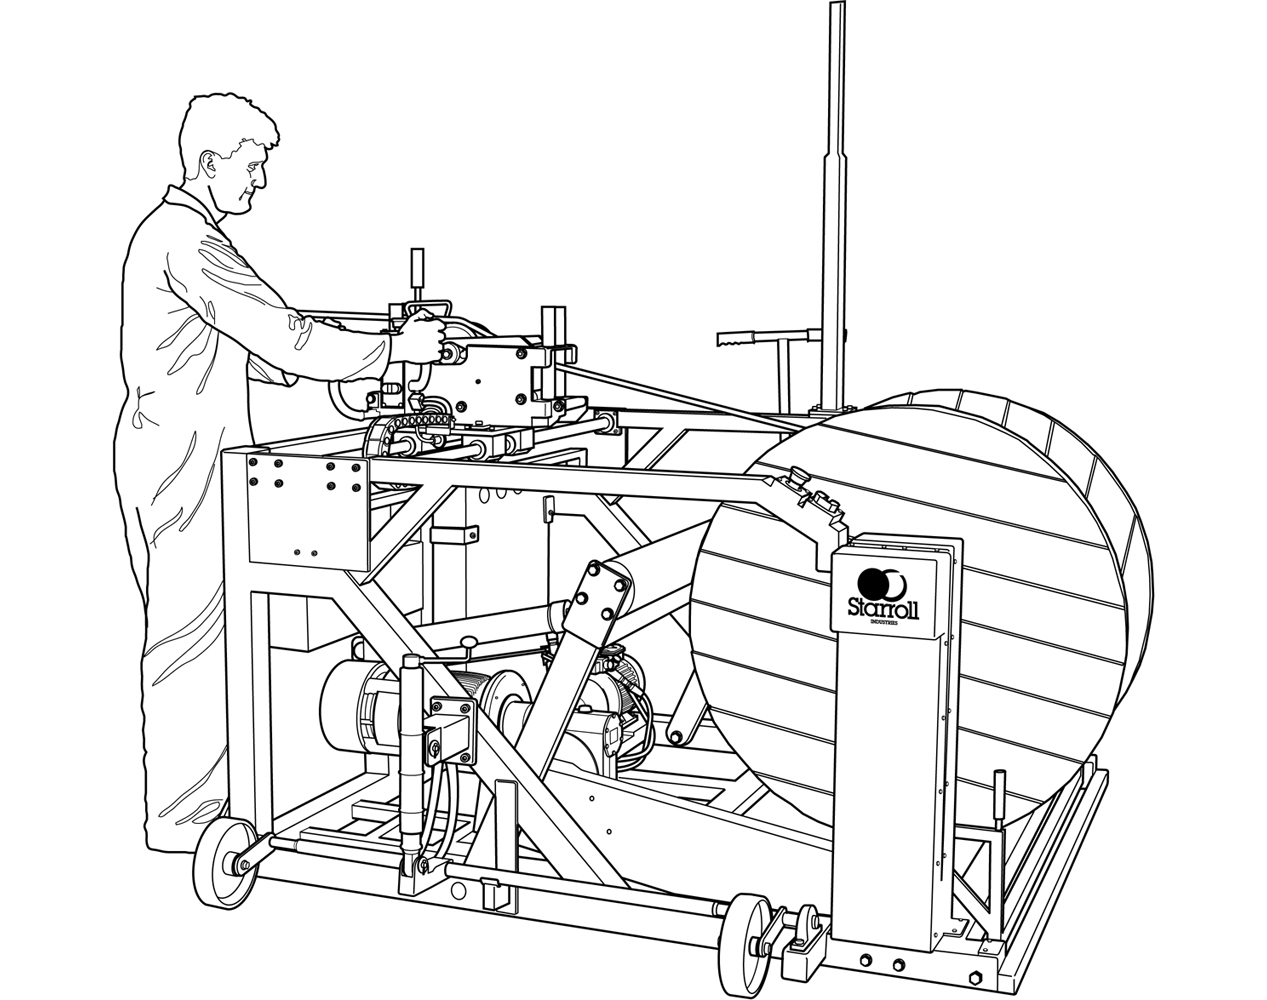 Ear Stretching 101 moreover Winding Measuring Machine Ac Inverter 2000kg moreover Wood Screw Chart Pdf besides Machine Electrical Symbols further 1 11 Instruments Used To Administer A Parenteral Injection. on machine wire sizes